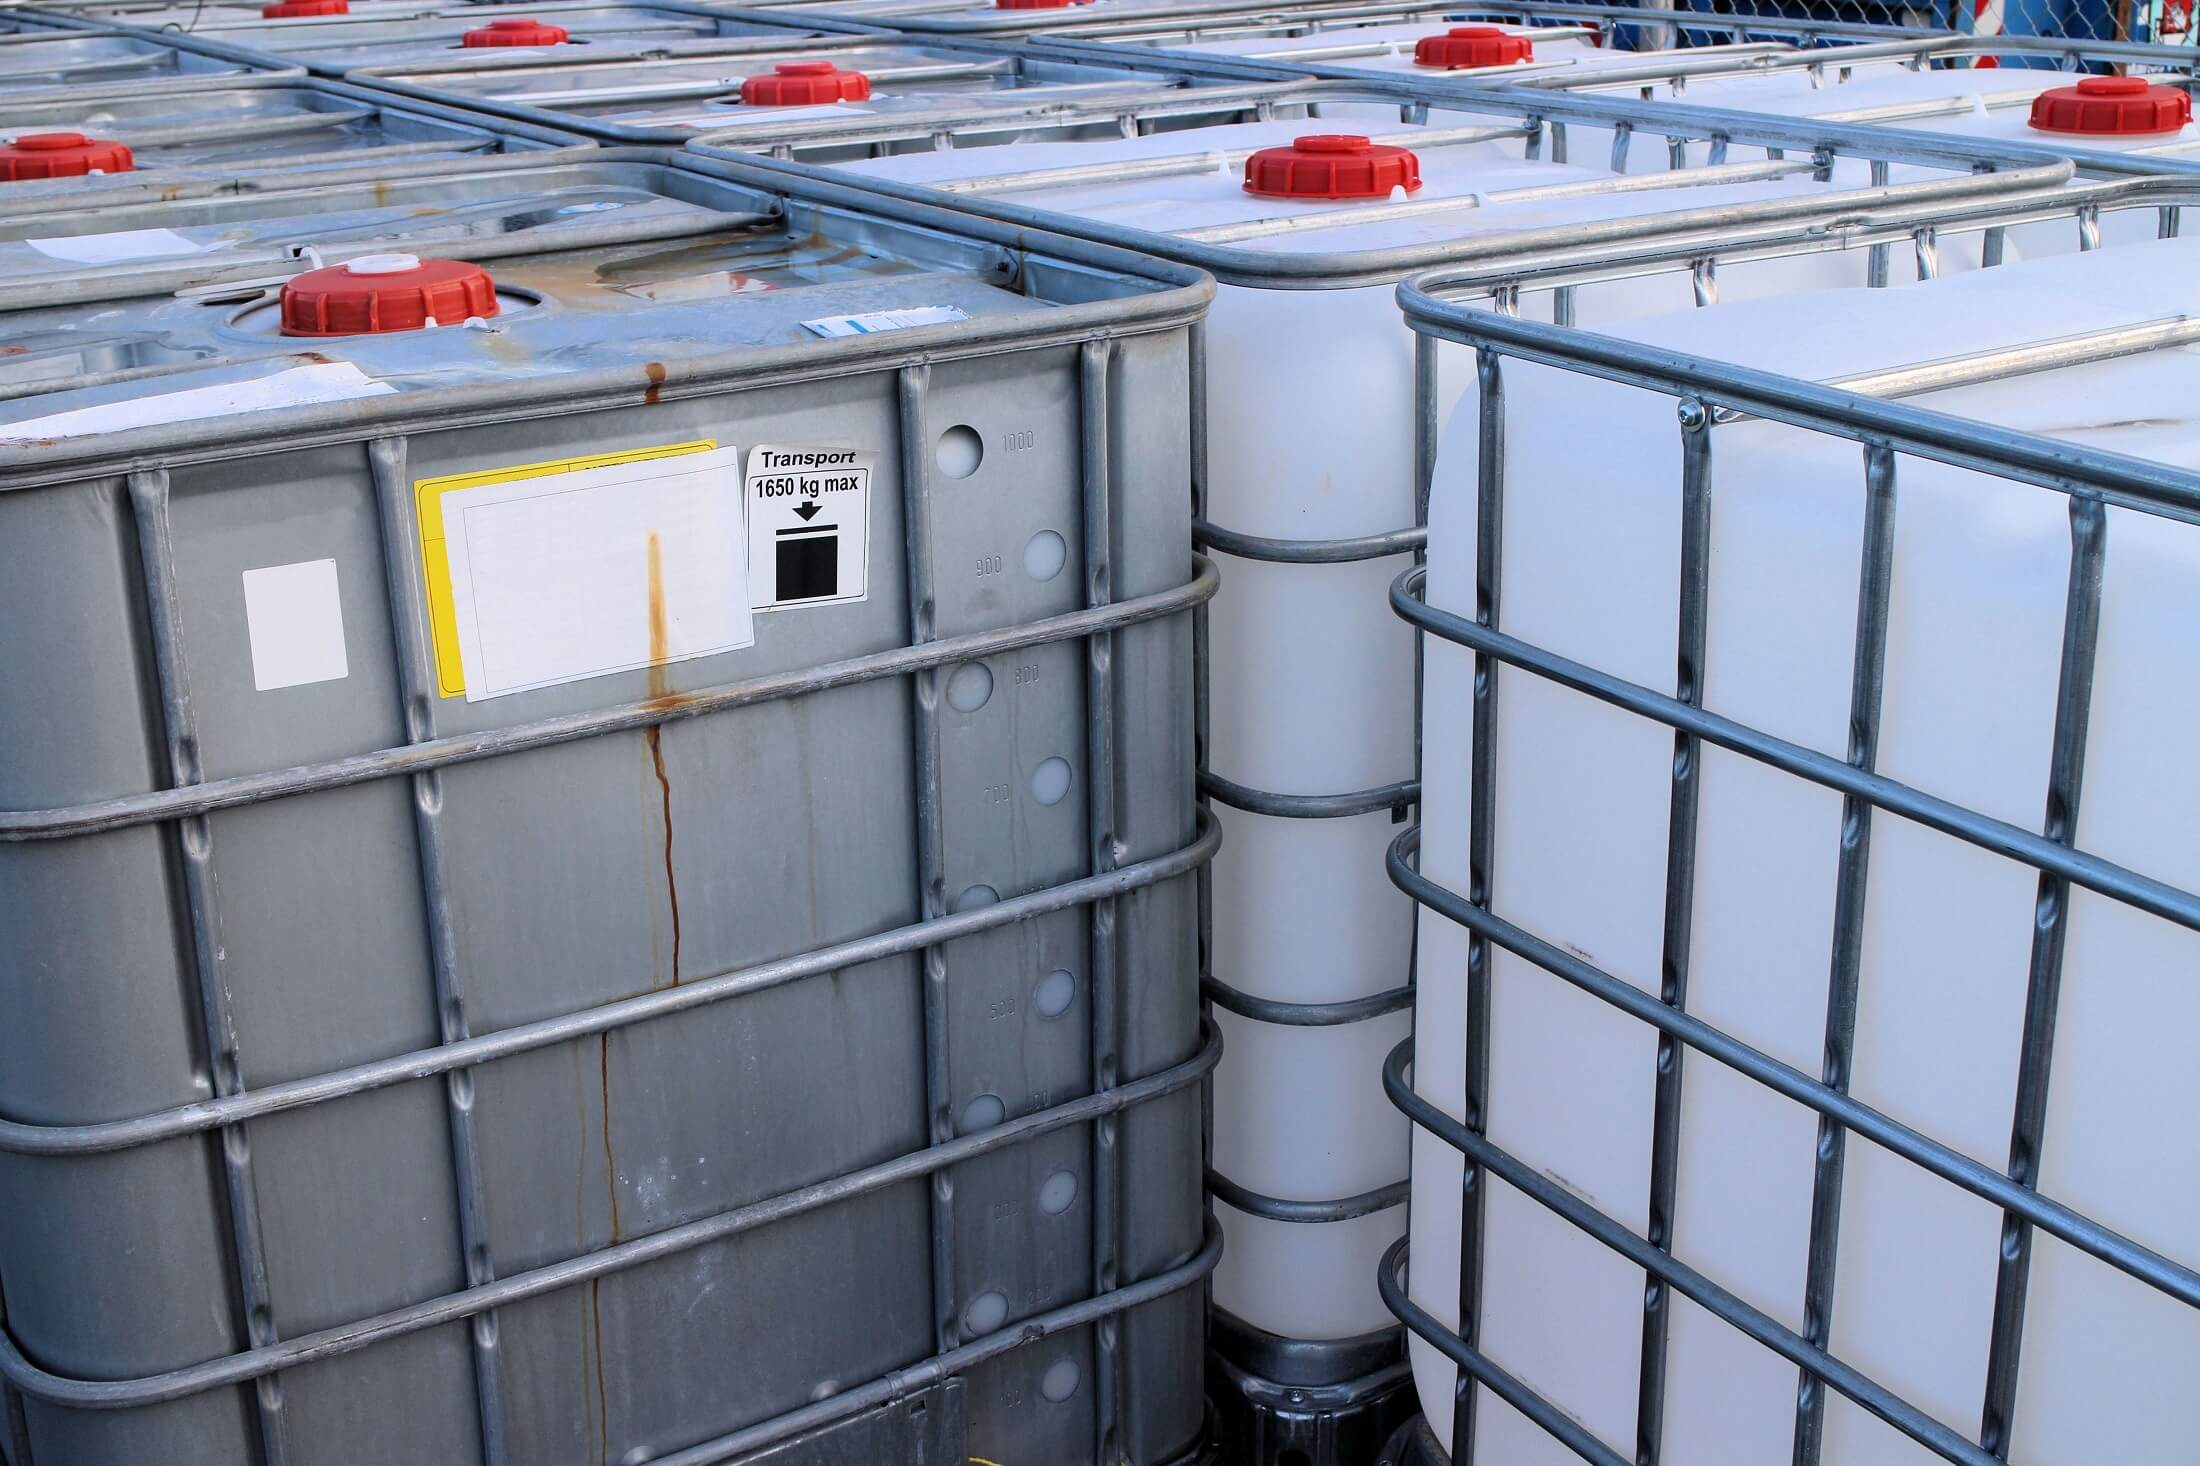 5 Steps to Storing Chemicals Safely in the Workplace